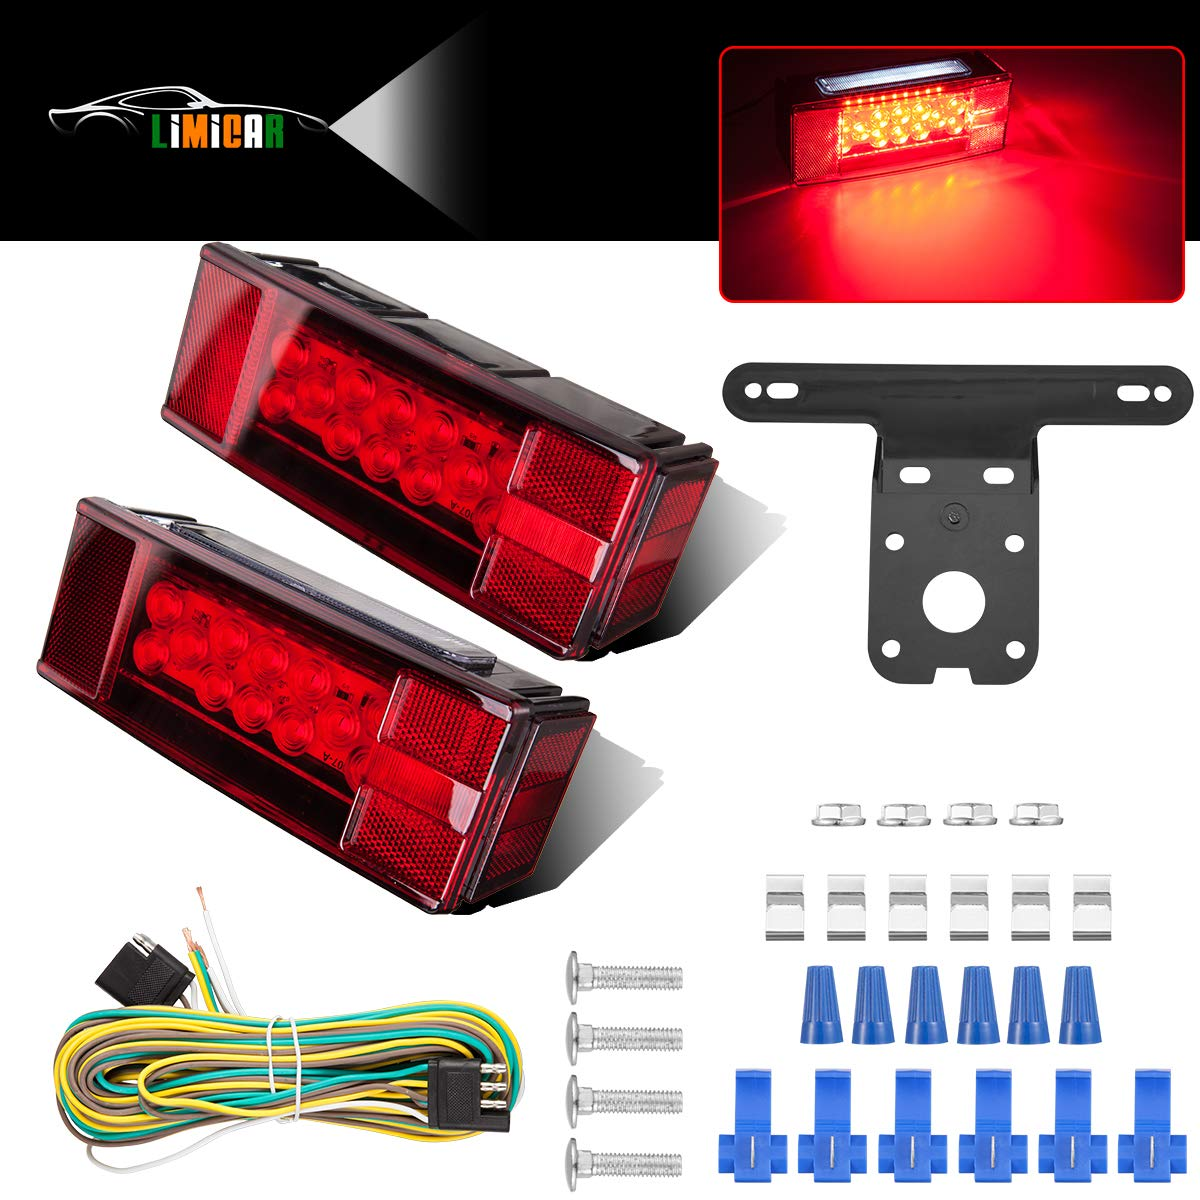 LIMICAR LED Trailer Lights Kit Waterproof 12V Led Rectangular Trailer Lights Stop Brake Turn Running Marker Lights with License Plate Bracket Wiring Harness for Truck Marine RV Boat Red White